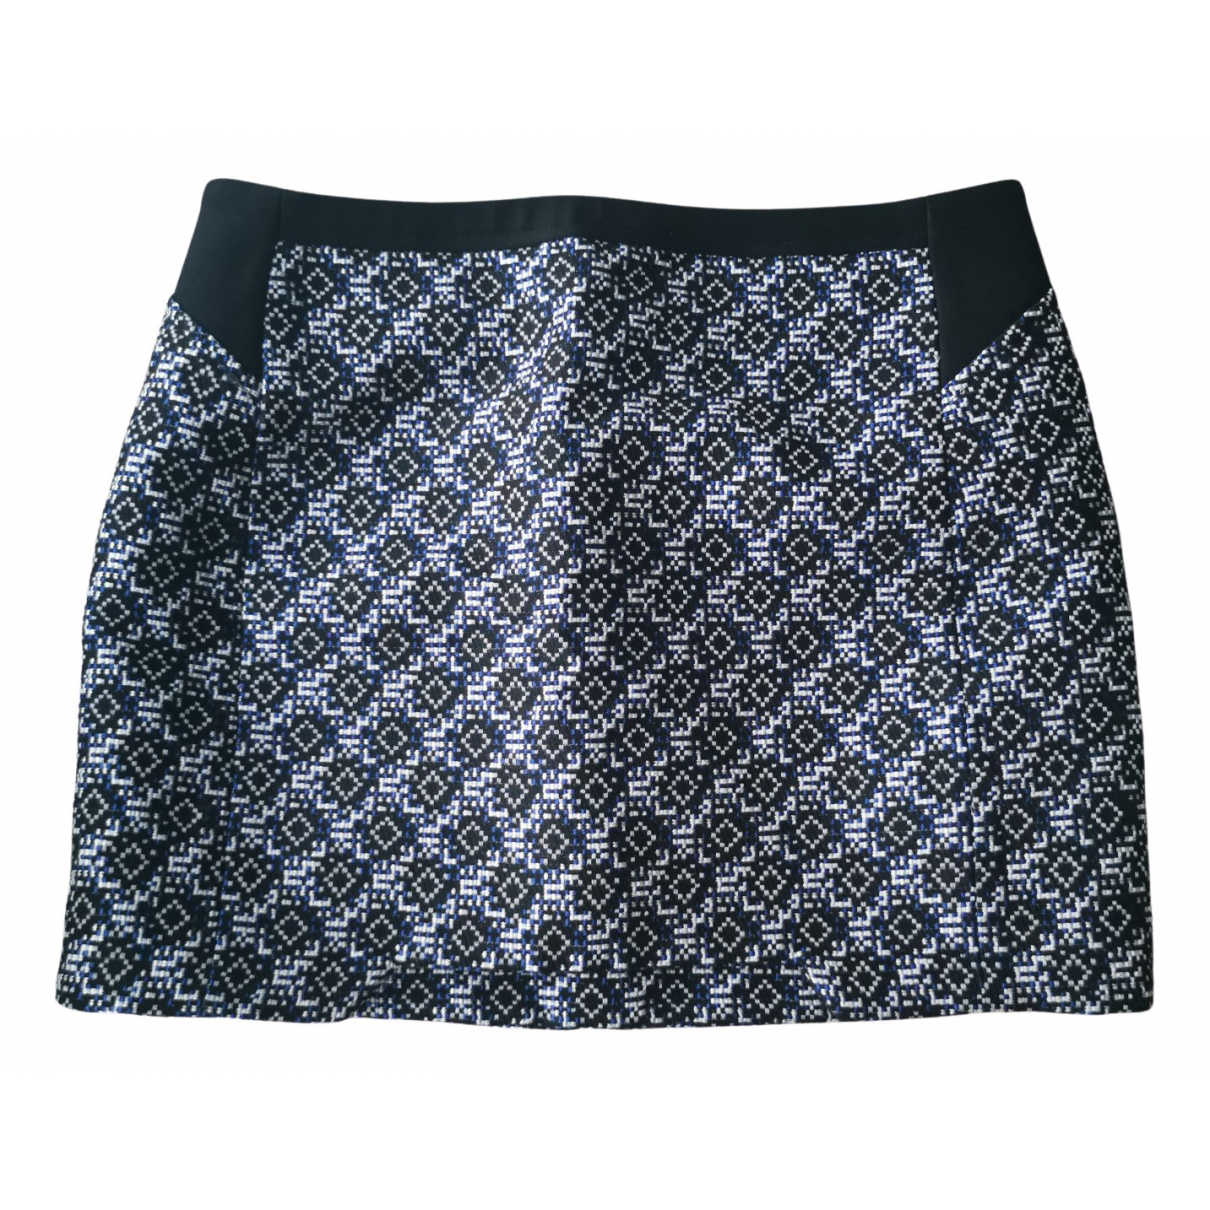 Maje \N Black skirt for Women 34 FR